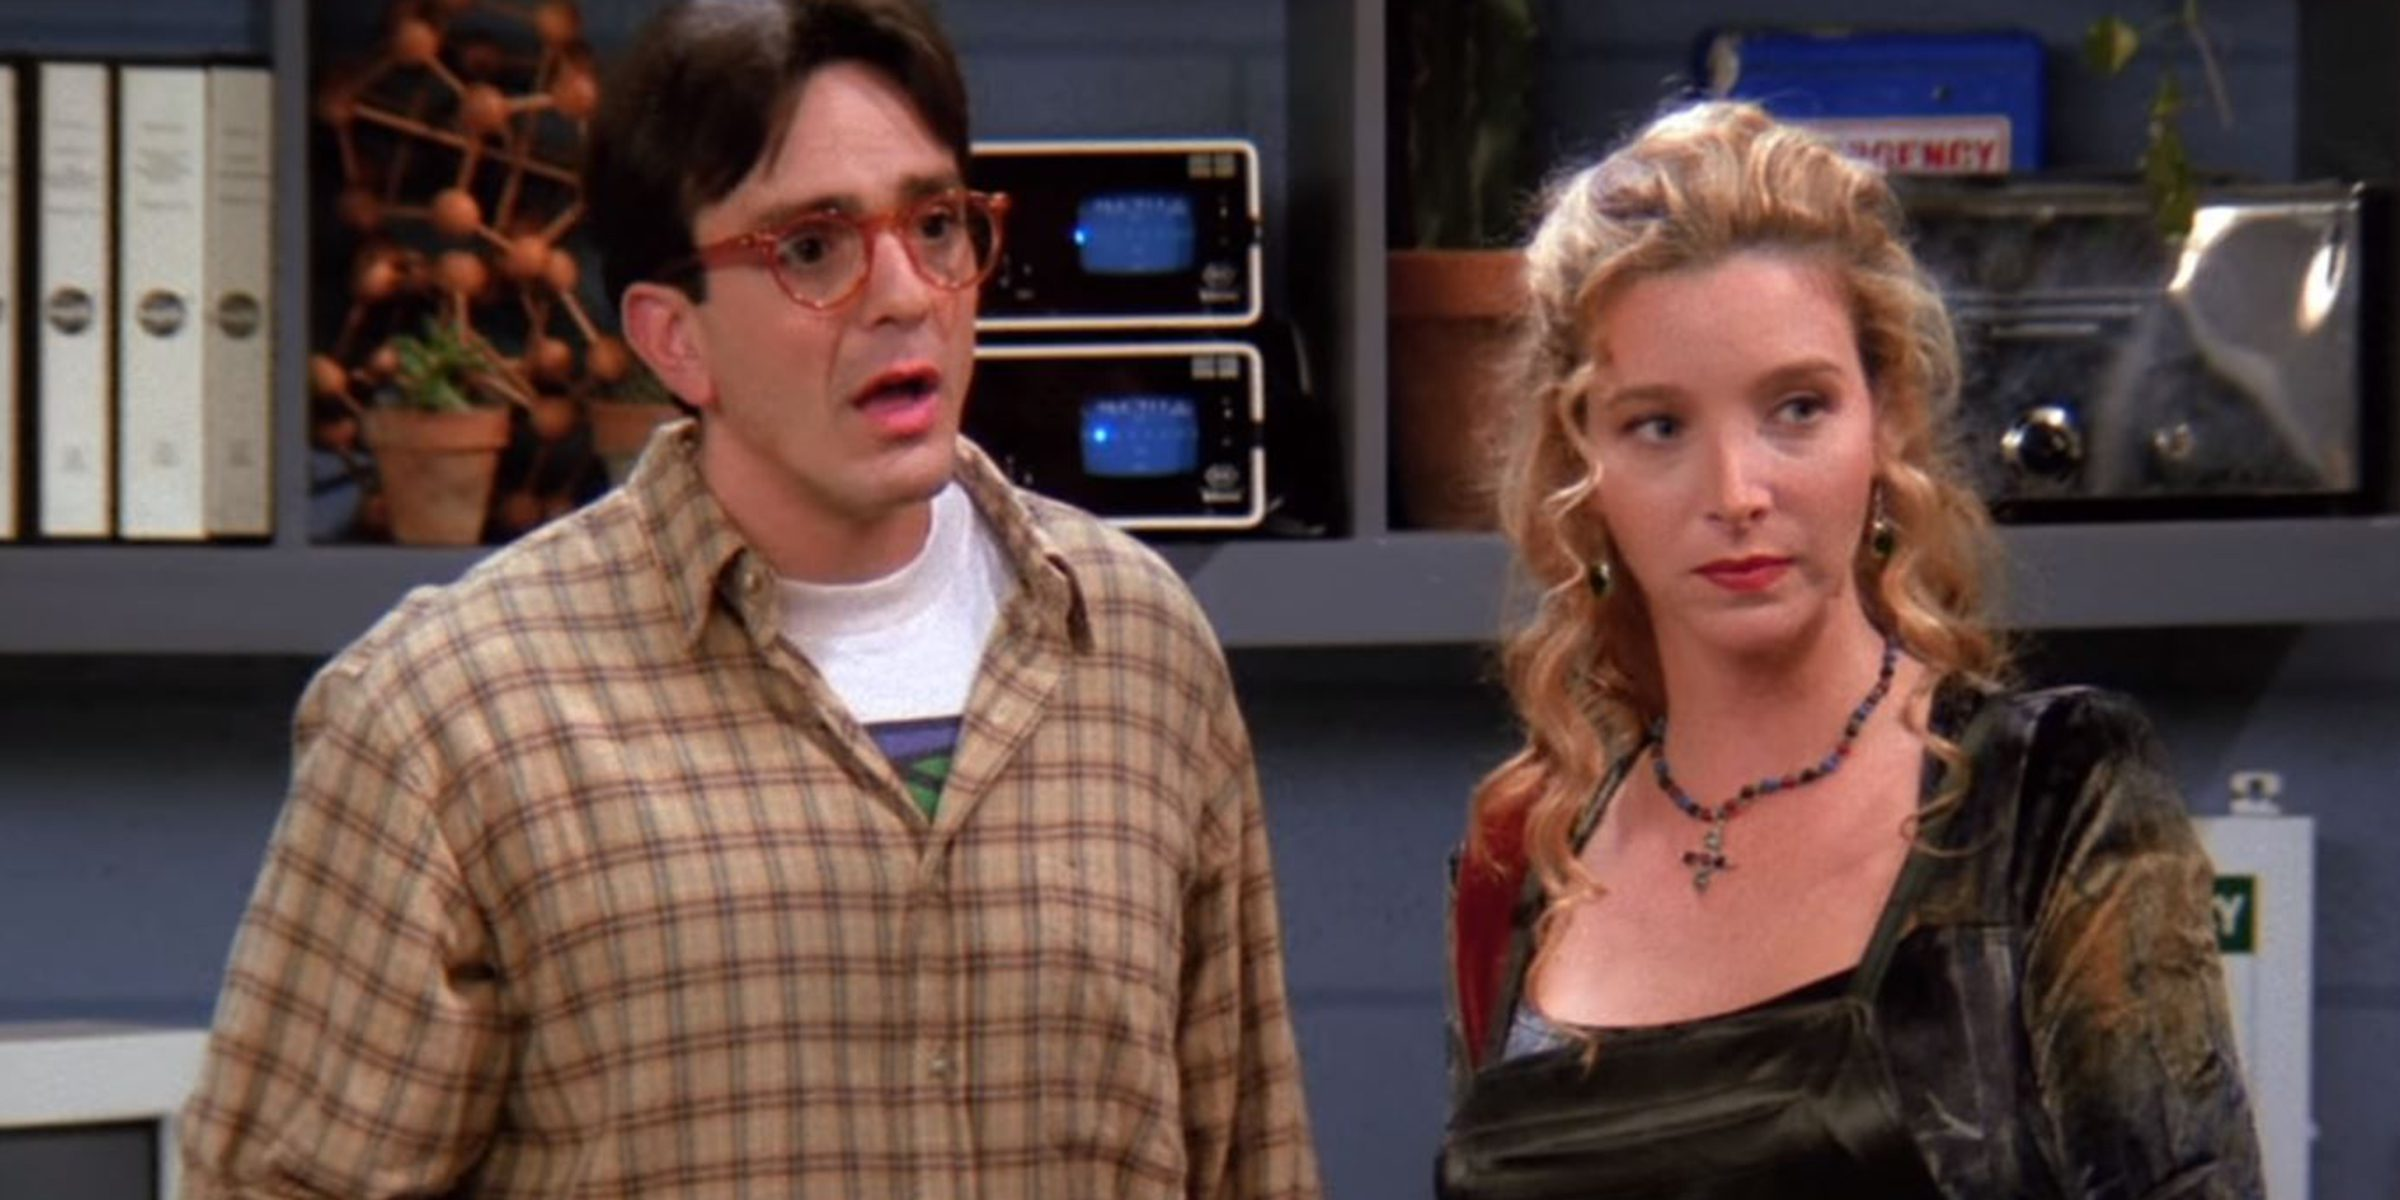 Friends' co-creator reveals Phoebe could have ended up with David